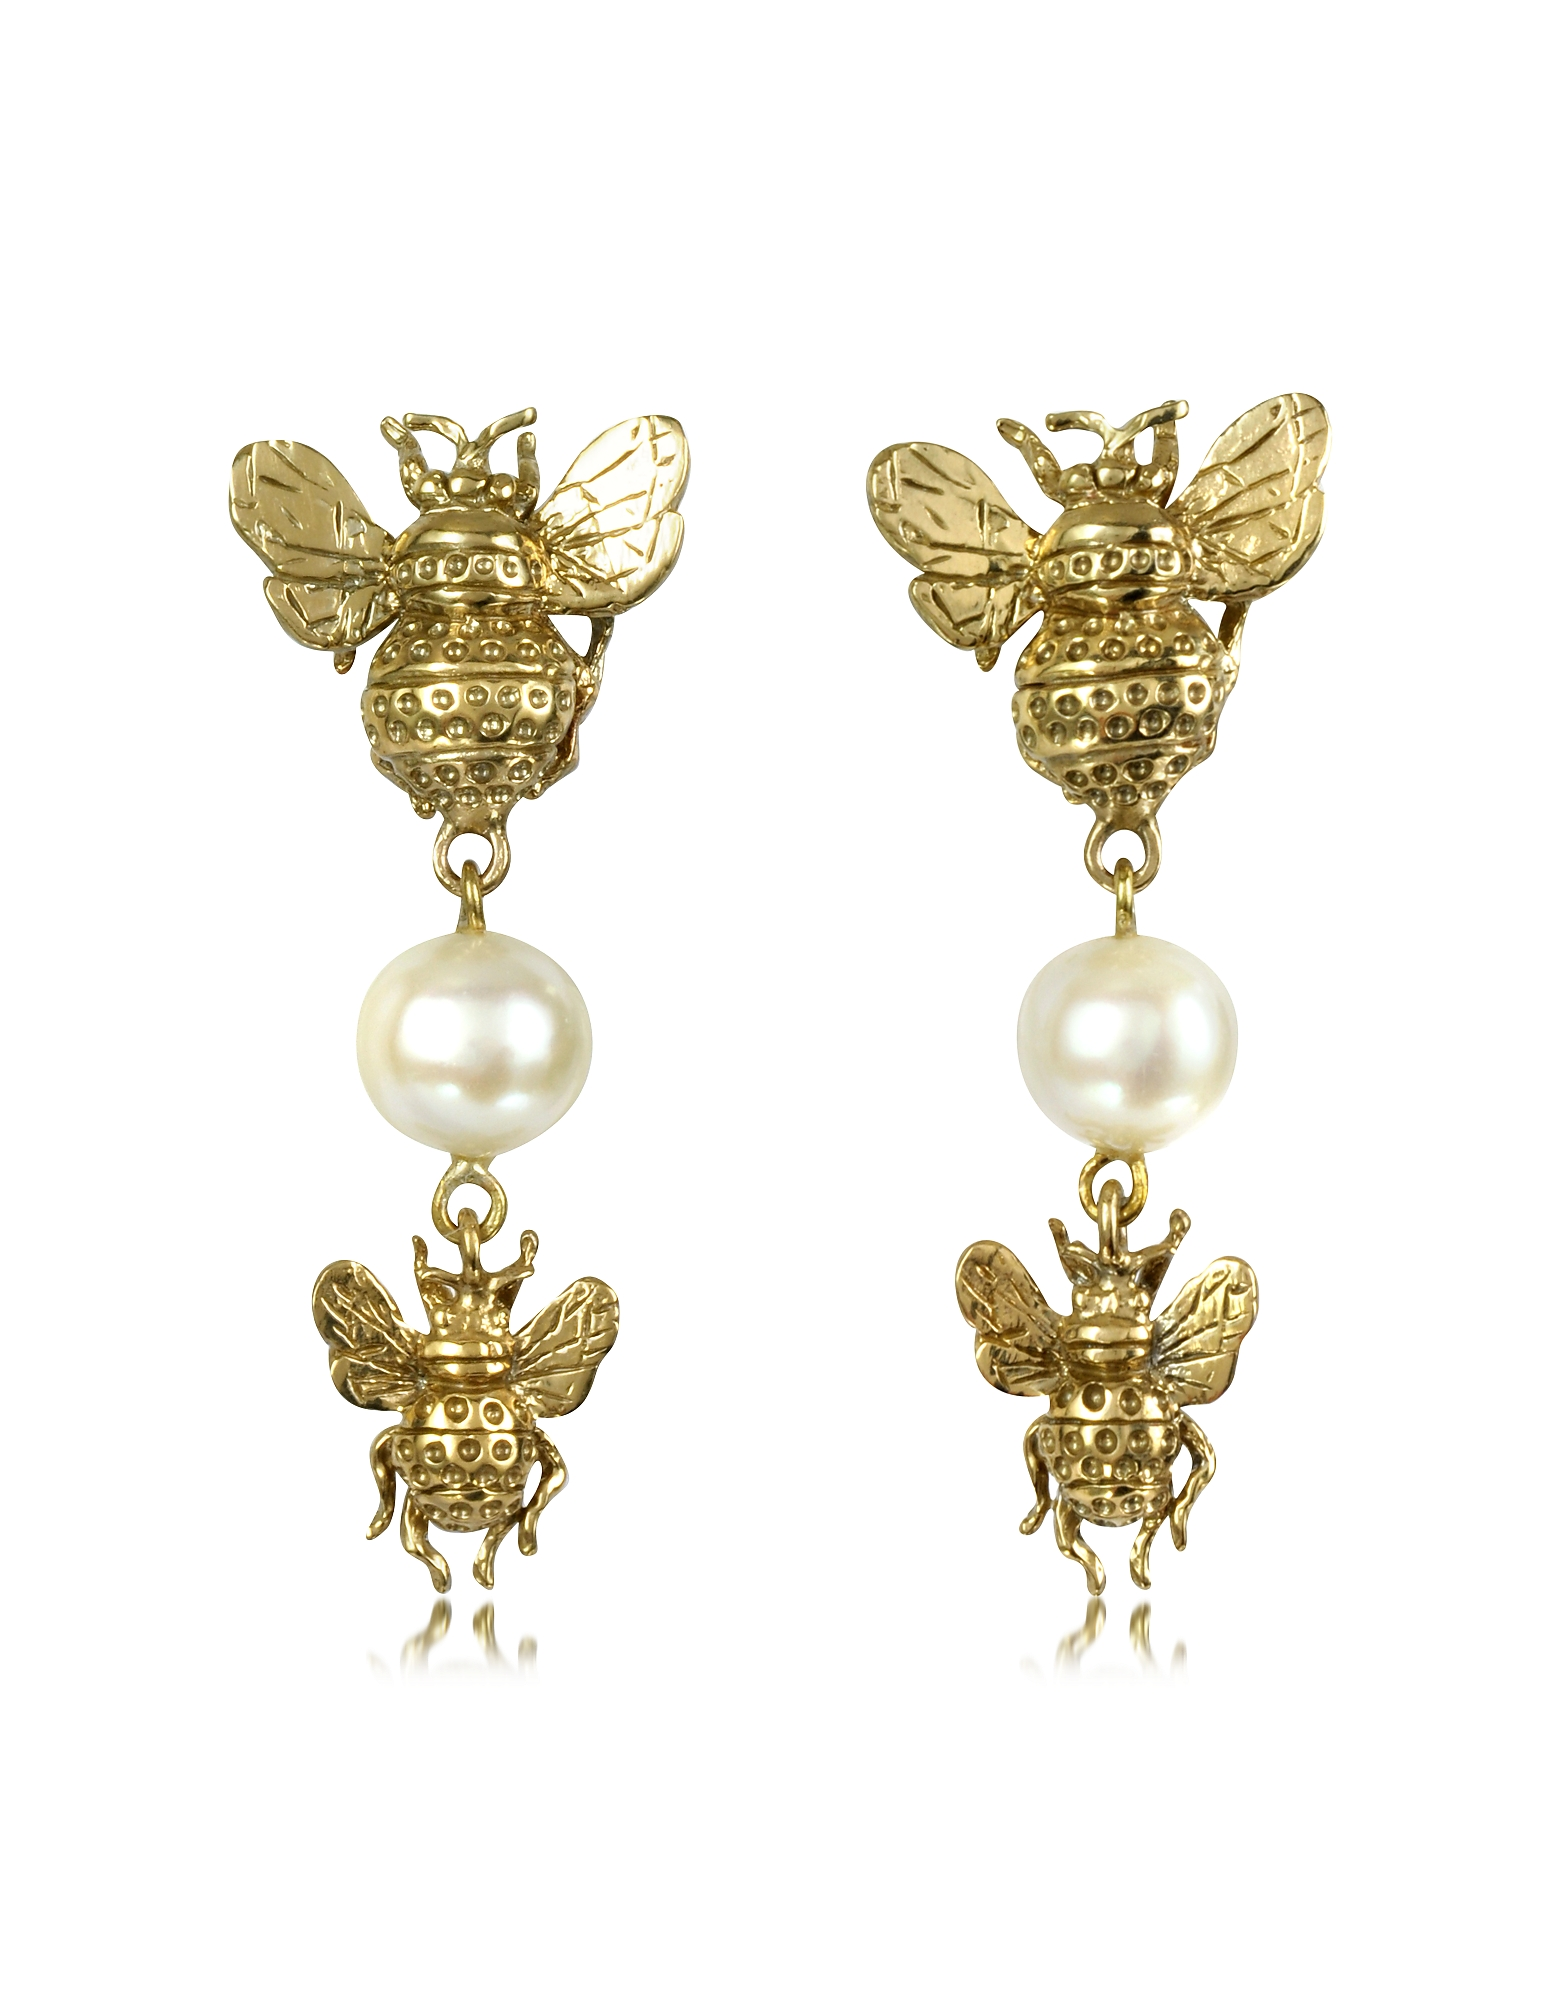 Bernard Delettrez Earrings, Bees and Pearls Bronze Earrings